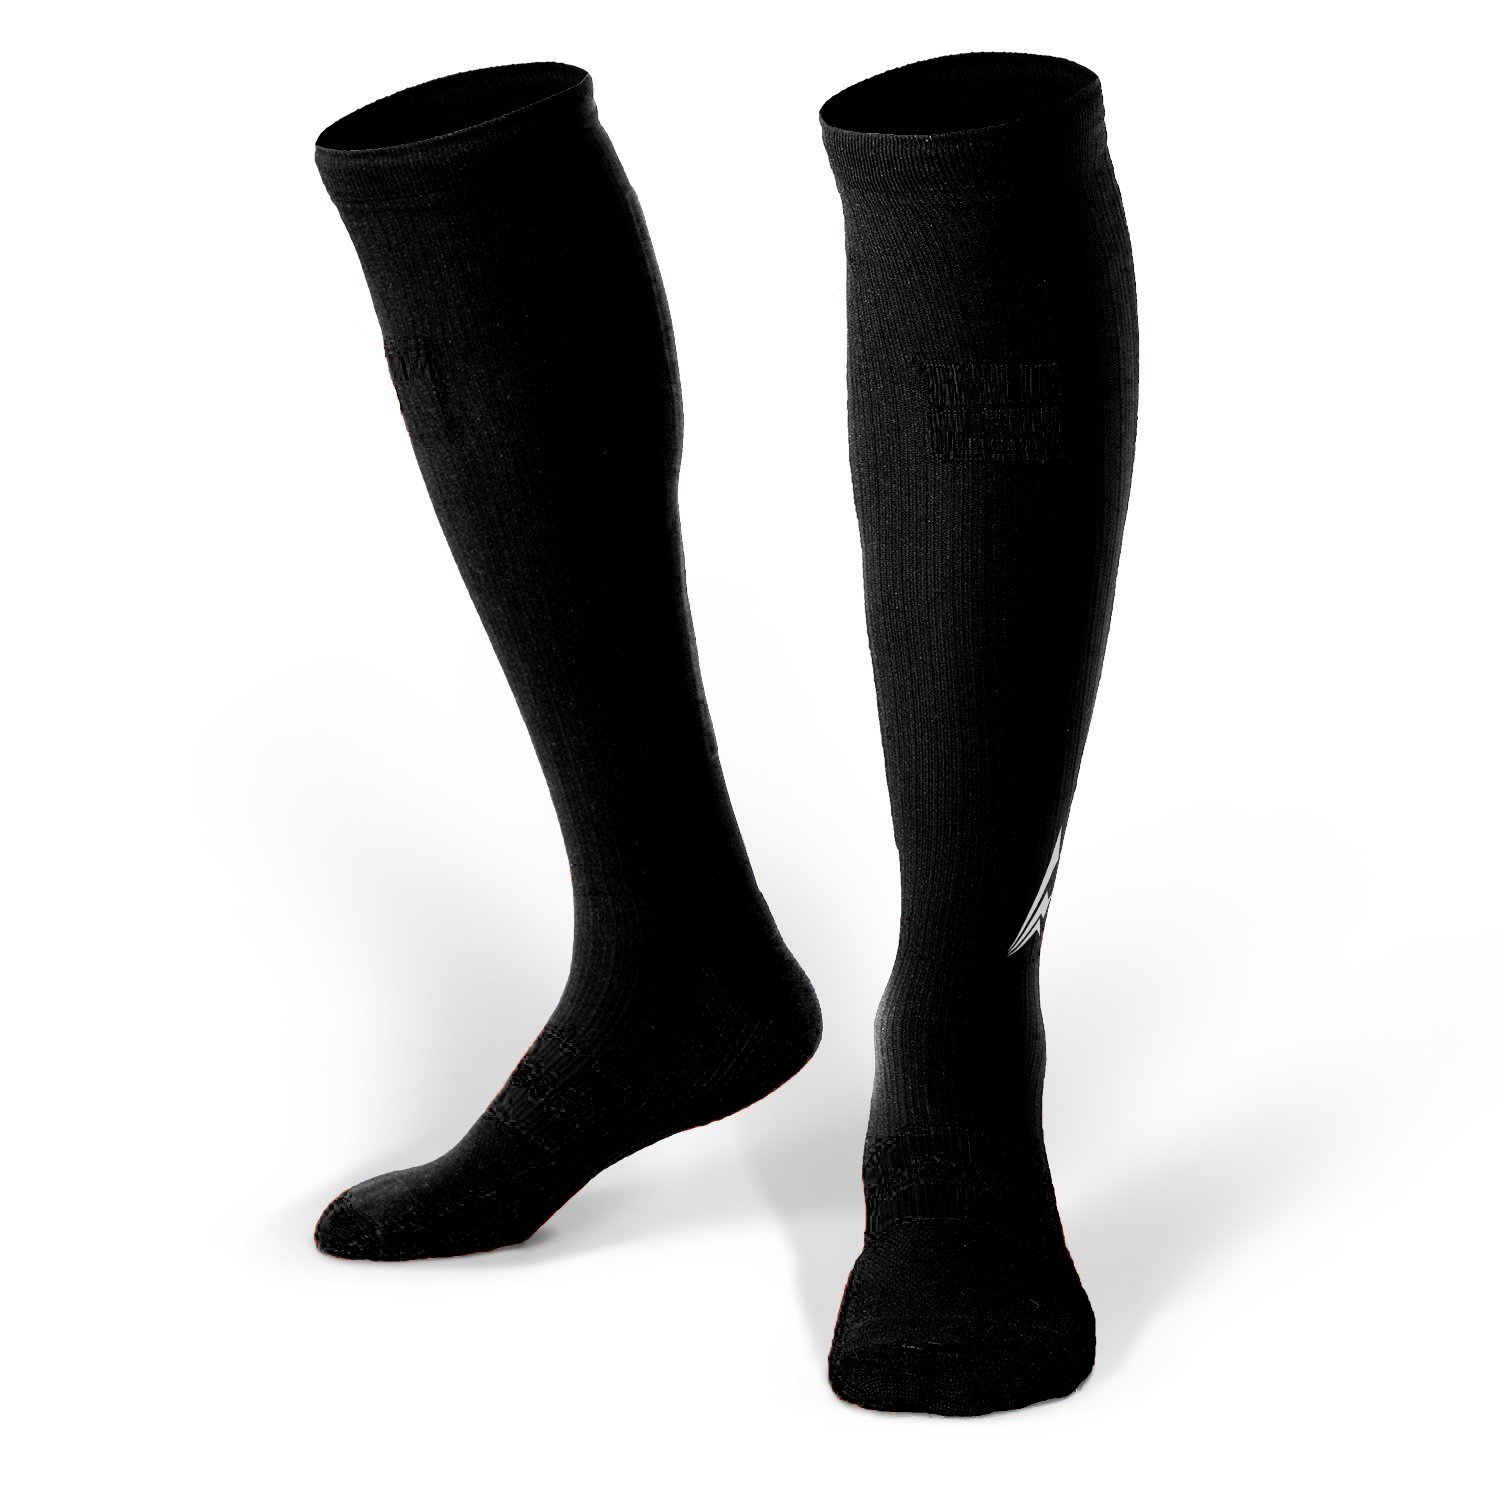 2nd Era Socks Sports H1 - Men & Women Compression Sports High Socks